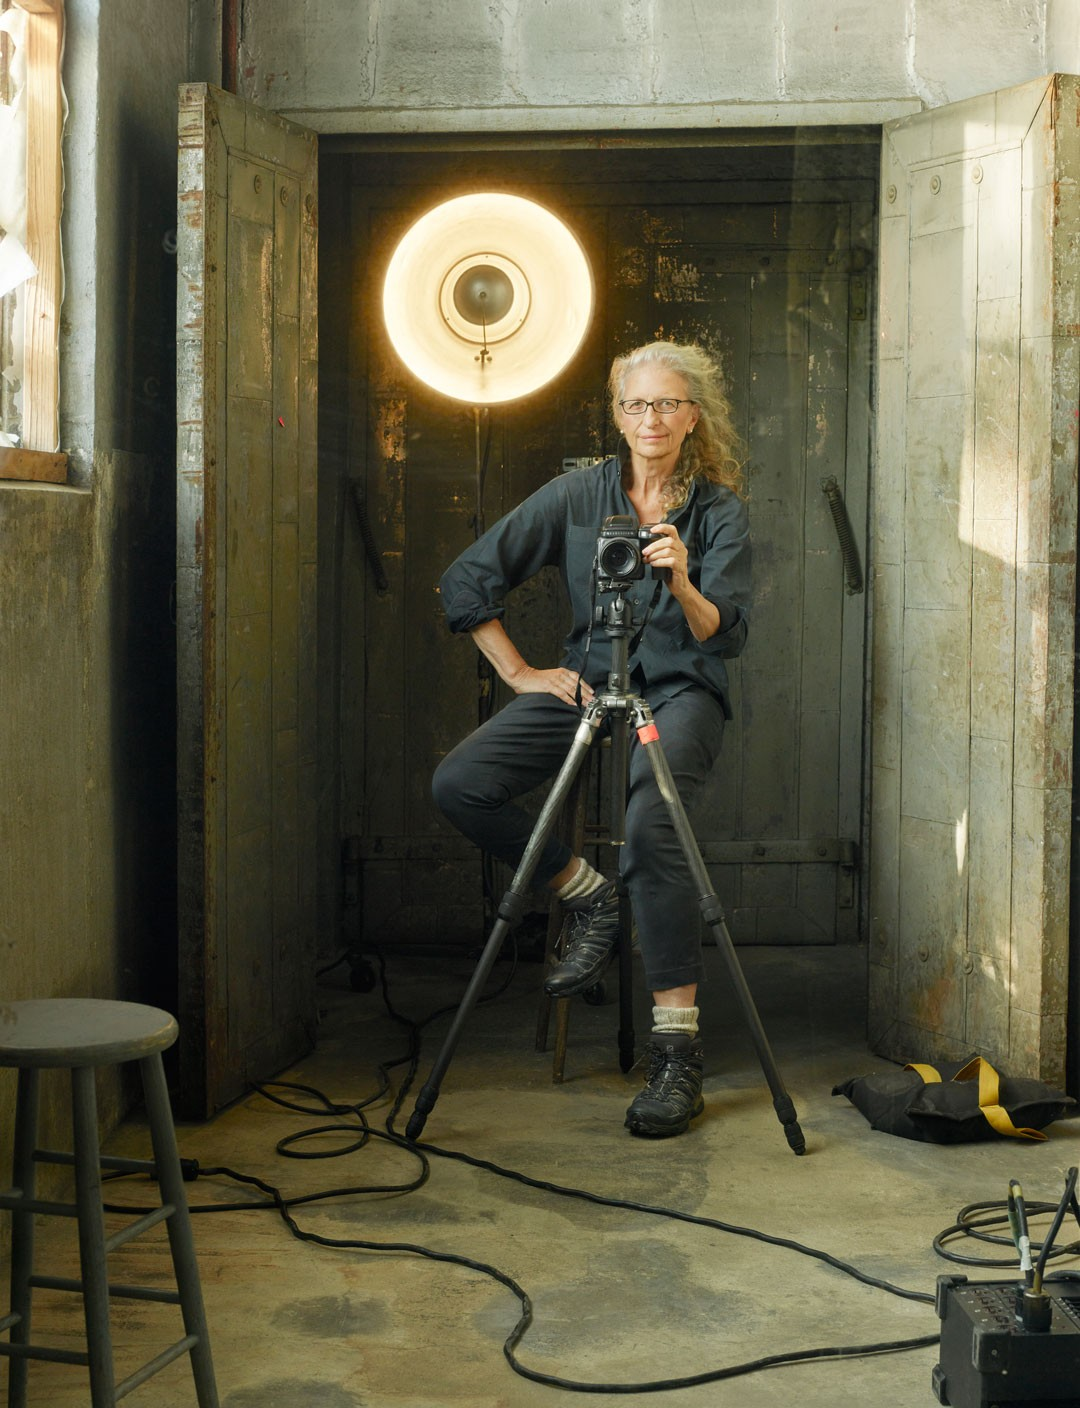 Annie Liebovitz - Not Copper Armour - The Photography Tag - Photography - Blogging - Lifestyle - Creativity